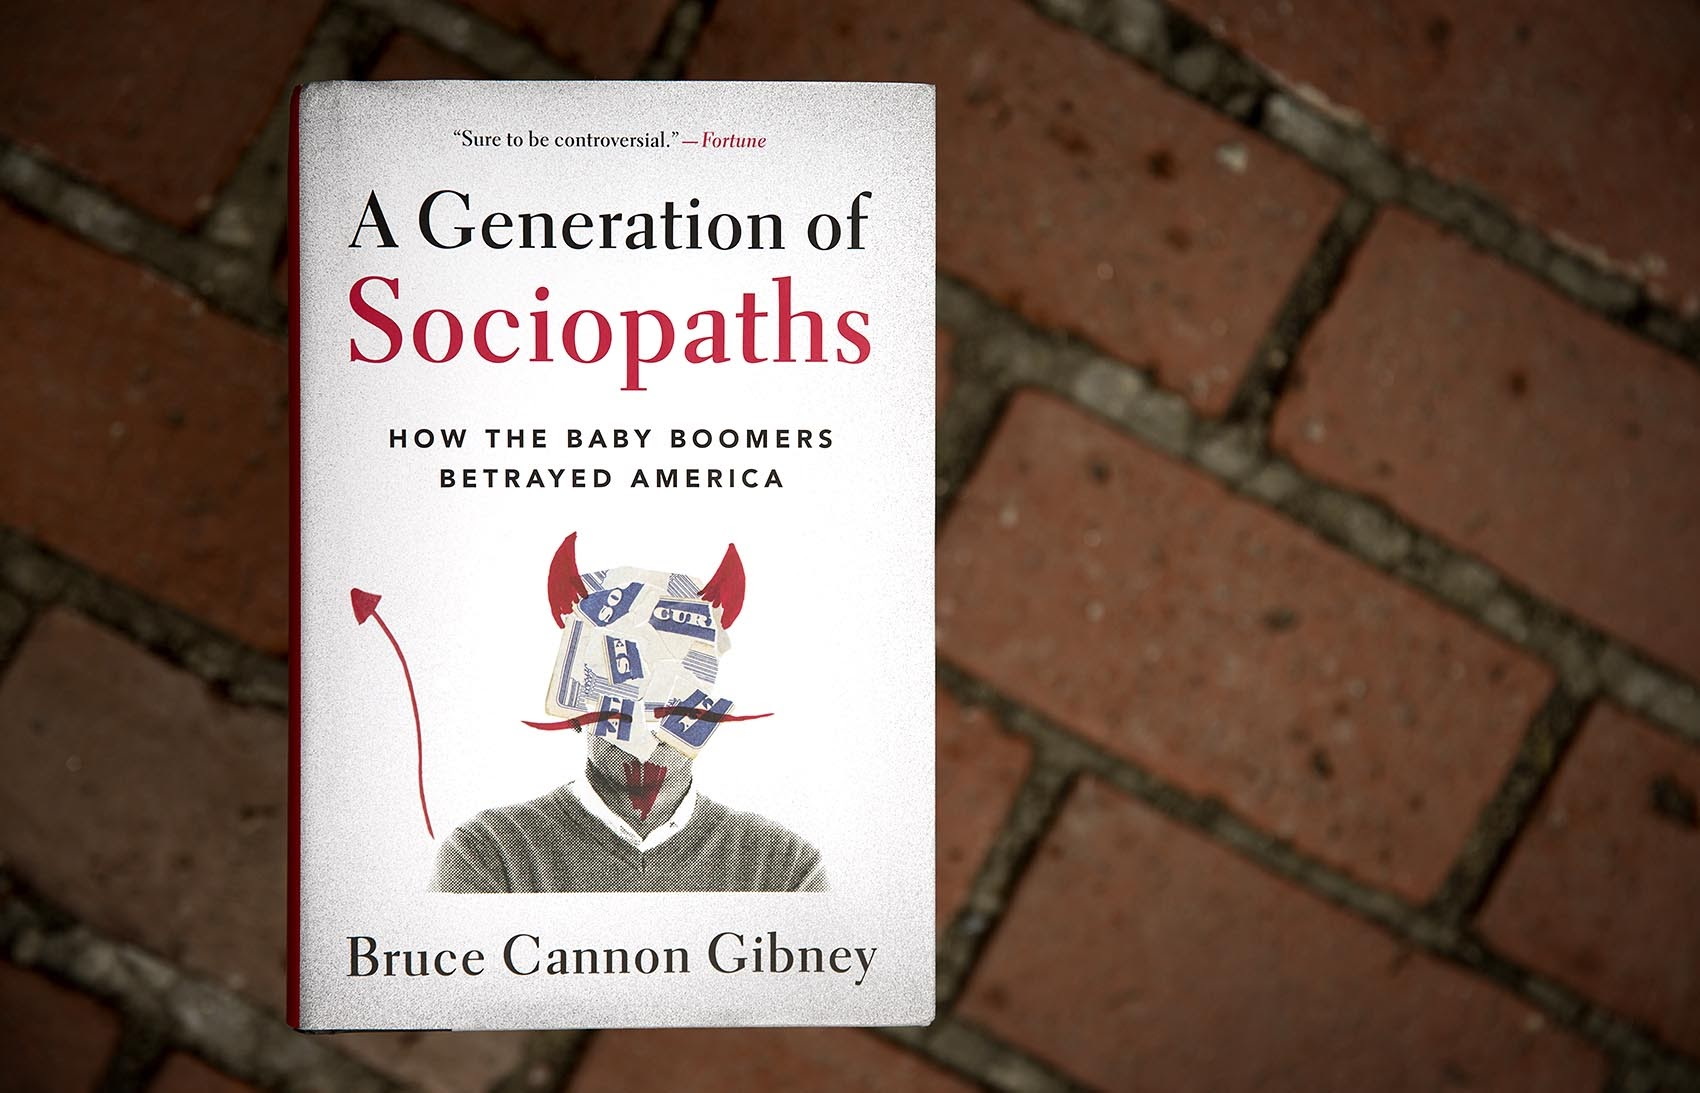 Image for One Author Argues 'Sociopathic' Baby Boomers Have Hurt America Article